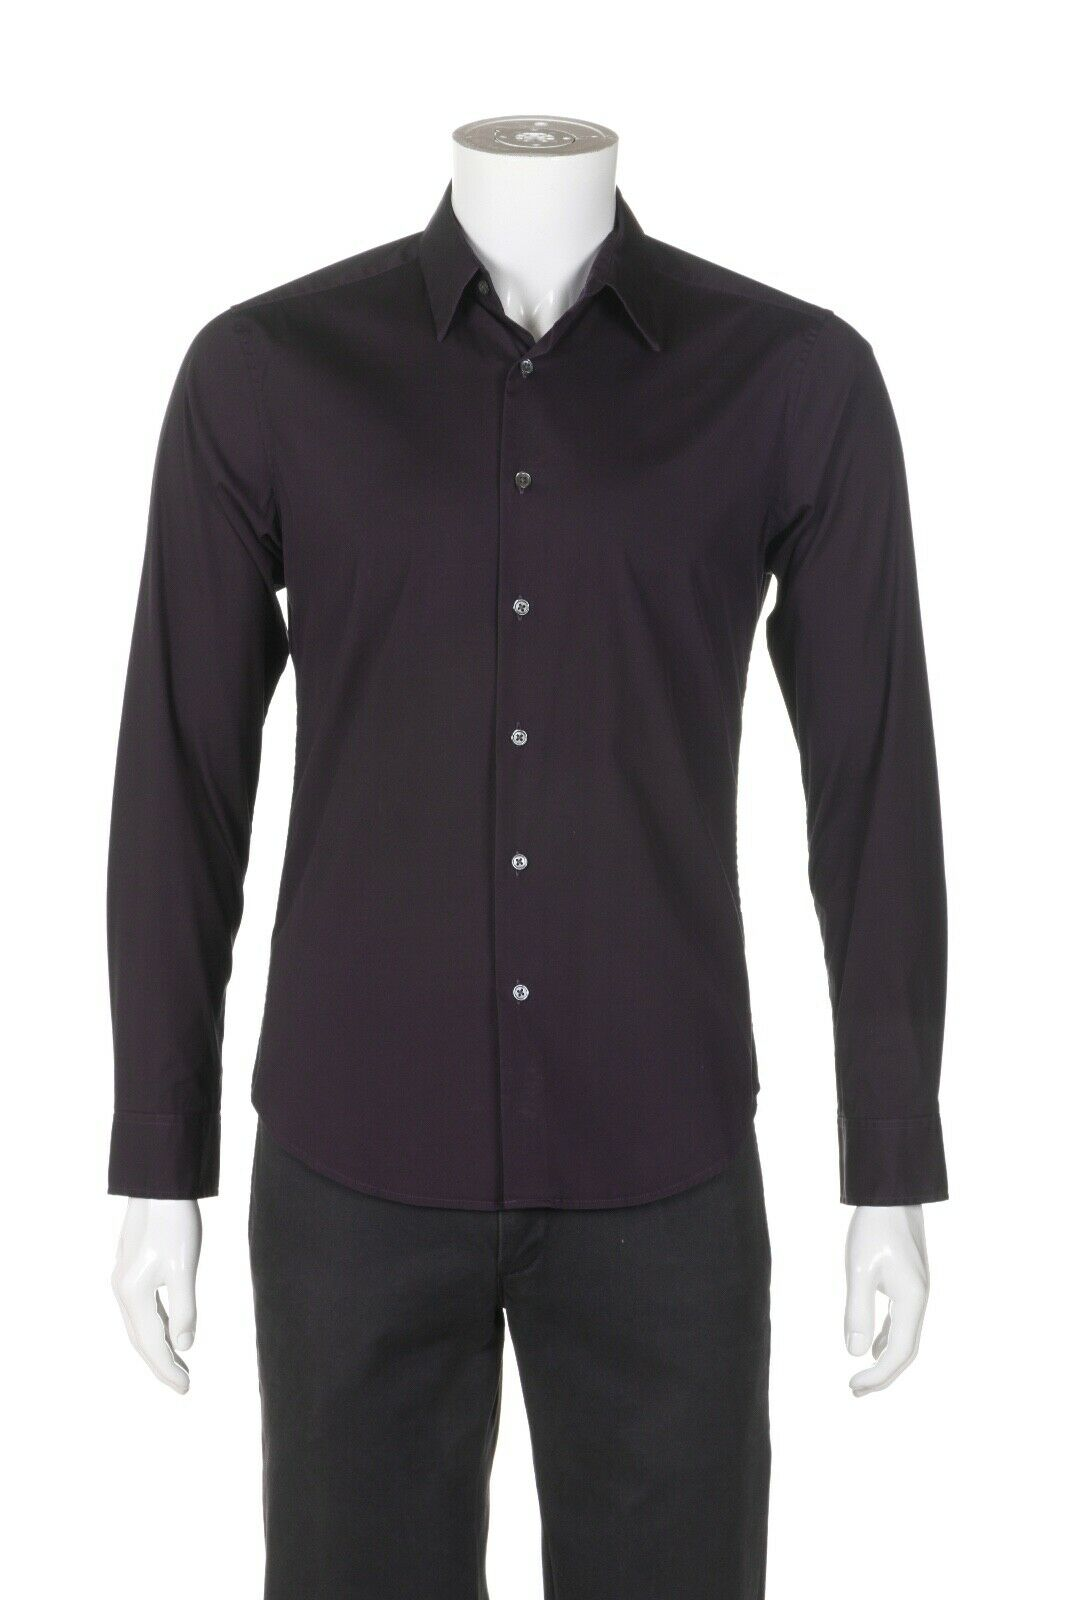 THEORY Sylvain Wealth Men's Button Down Shirt Size S